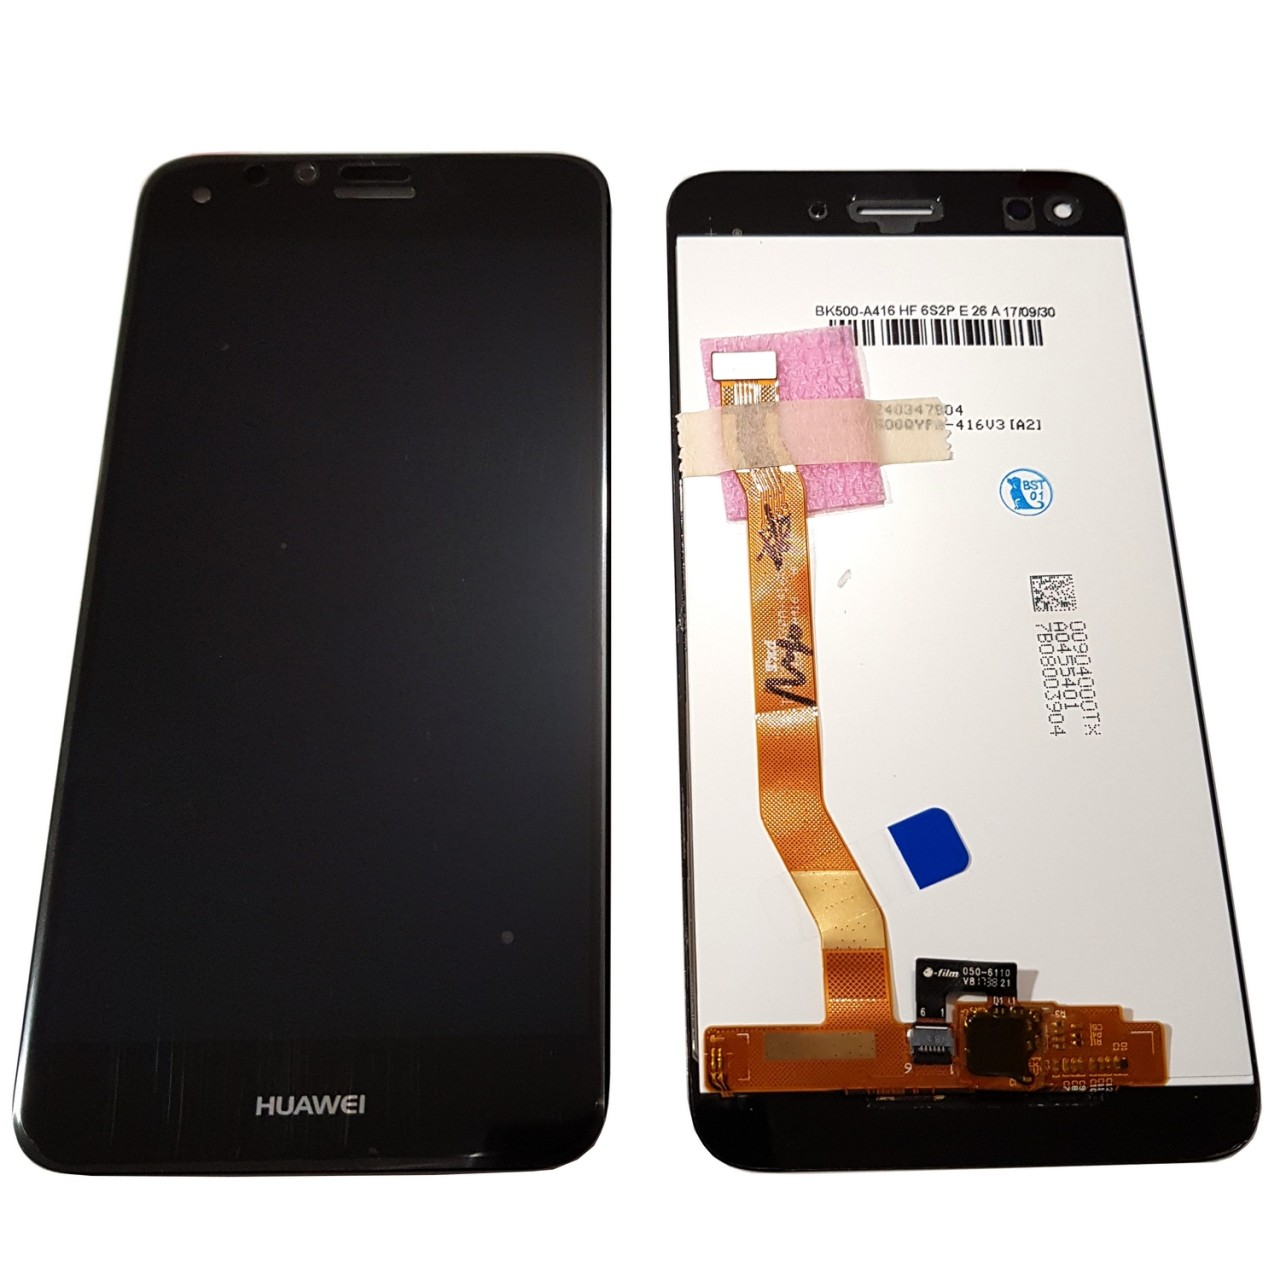 Display Huawei Y6 Pro 2017 Black Negru imagine